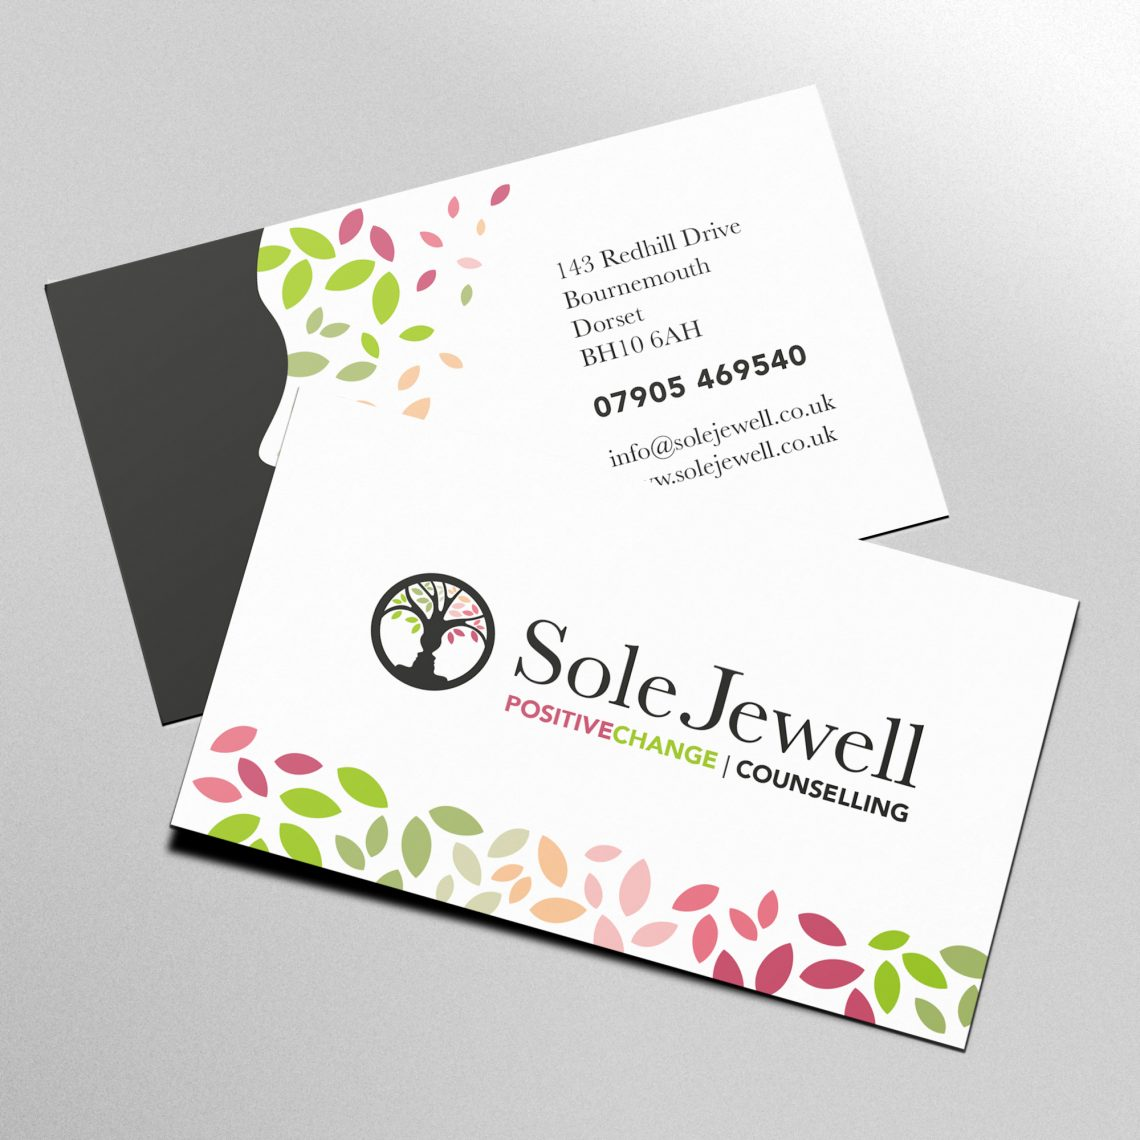 Sole Jewell Business Card Design